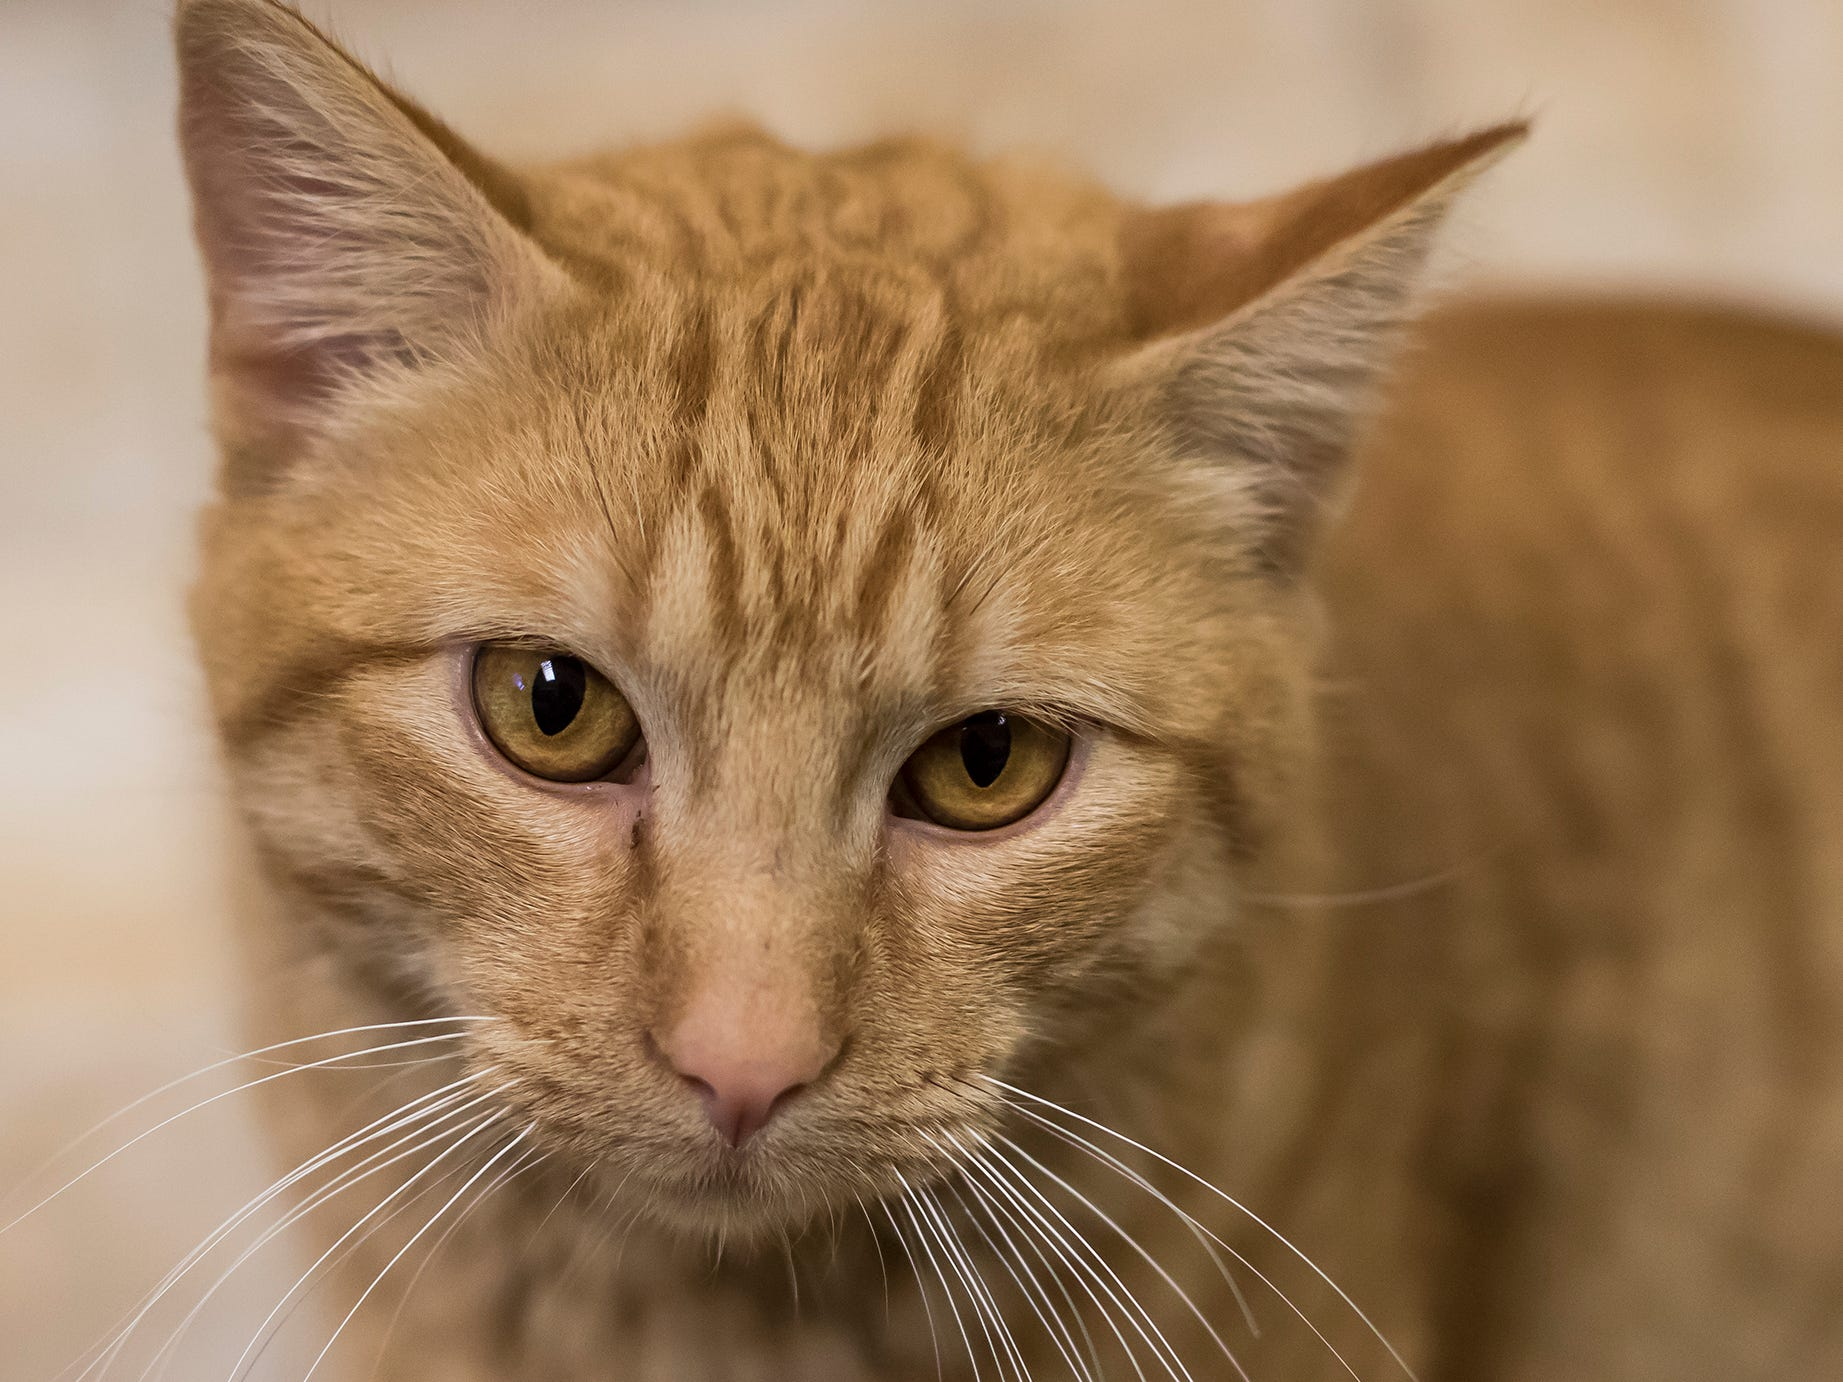 Mr. Pumpkin Fluffers is between 1 and 3 years old. He's friendly and enjoys chin scratches and belly rubs.